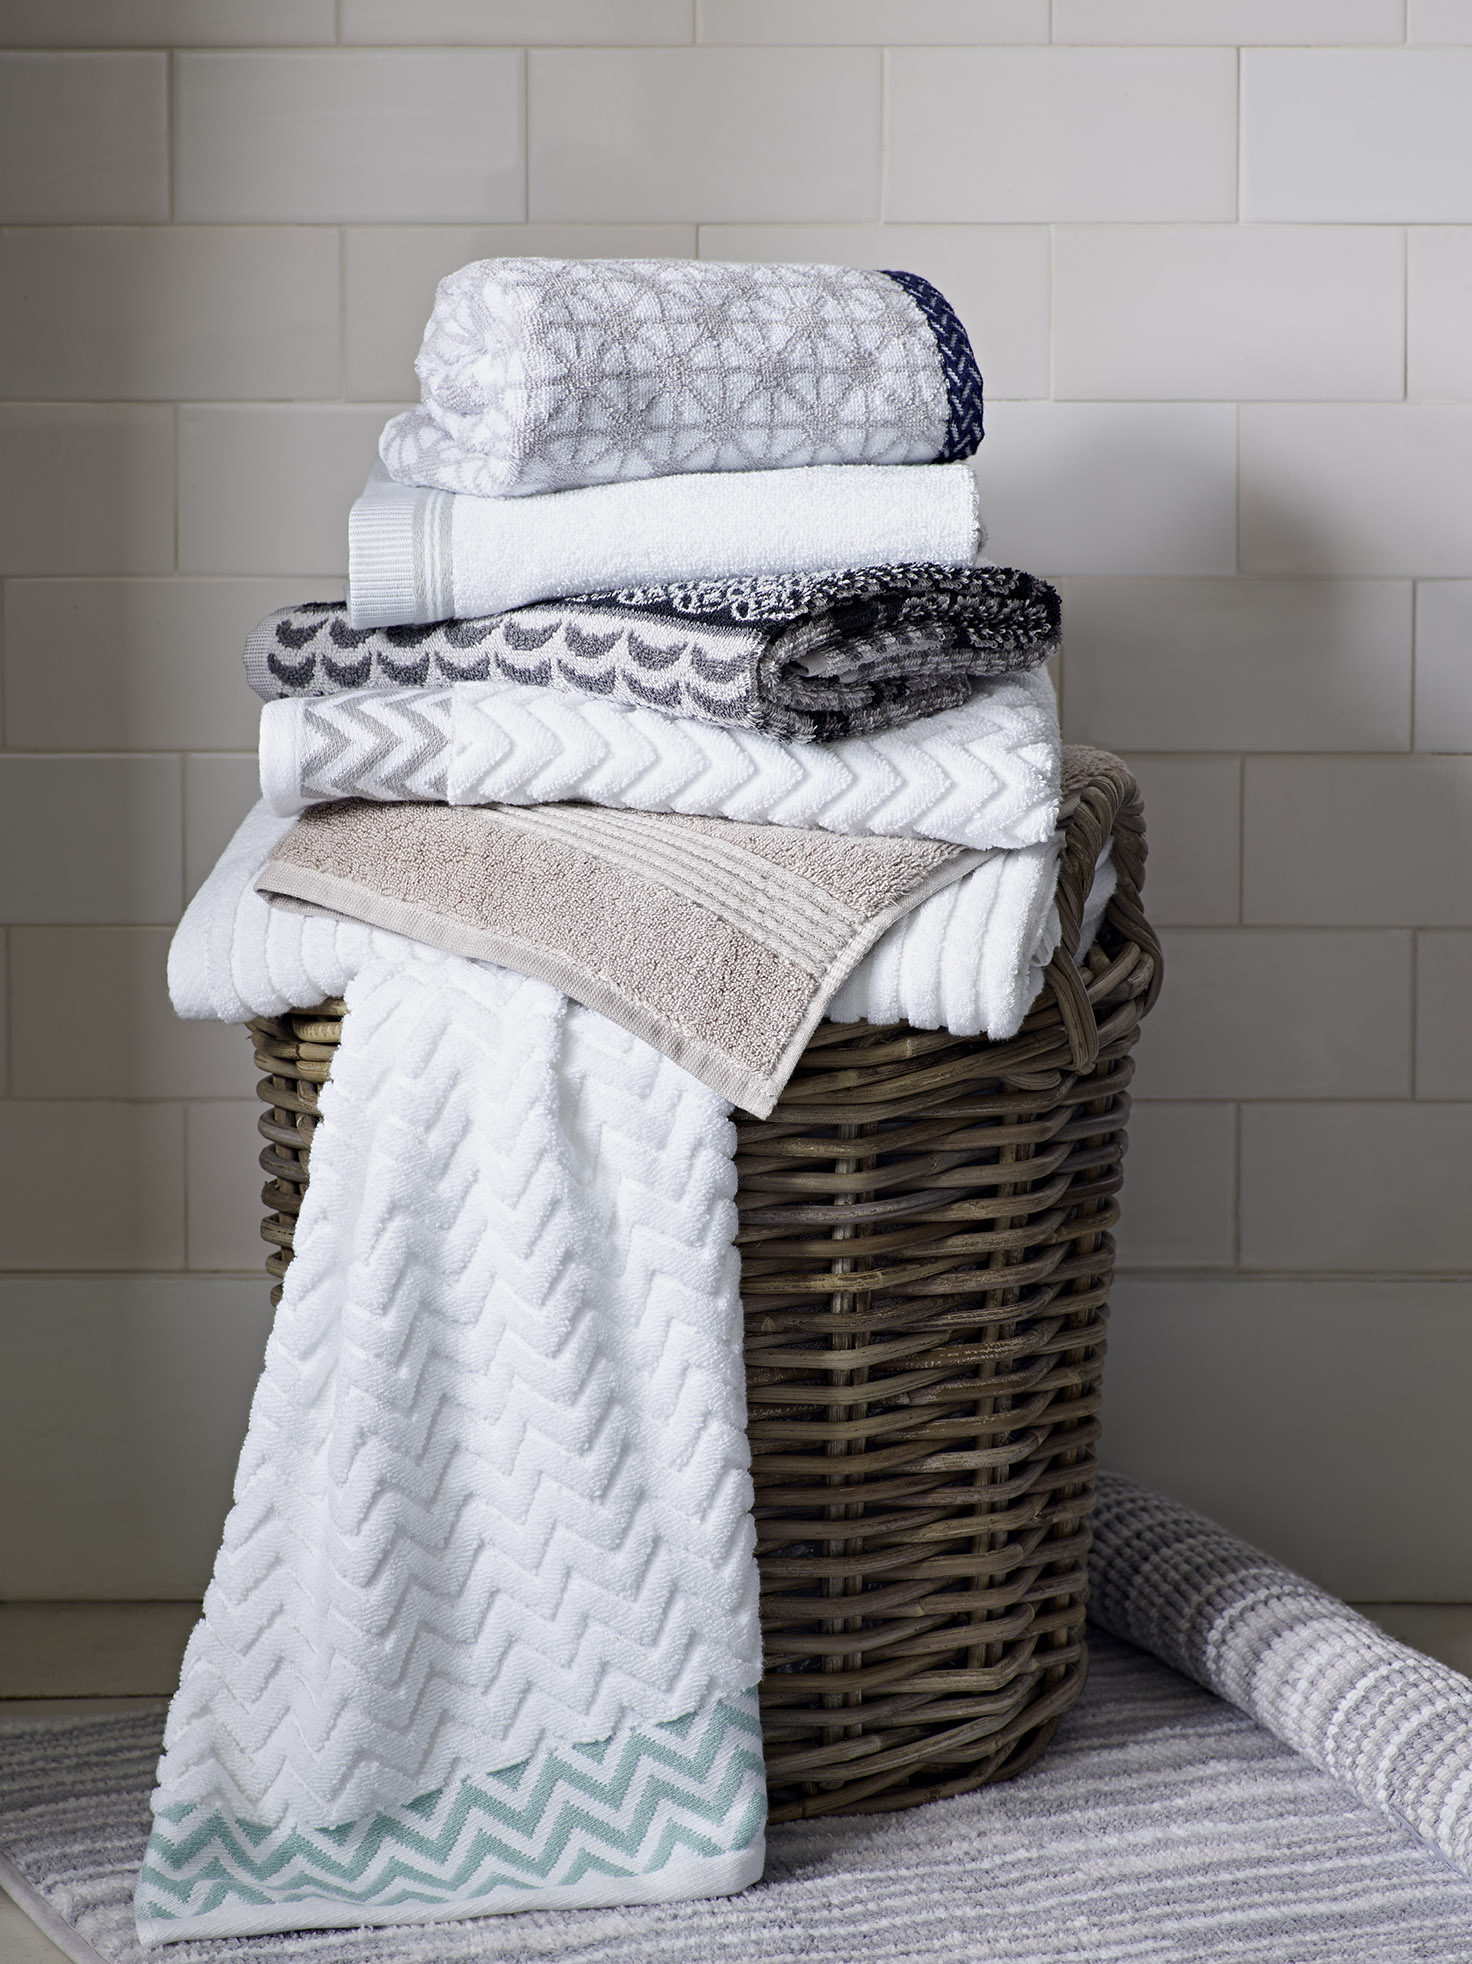 5 easy ways to turn your bathroom into a home spa